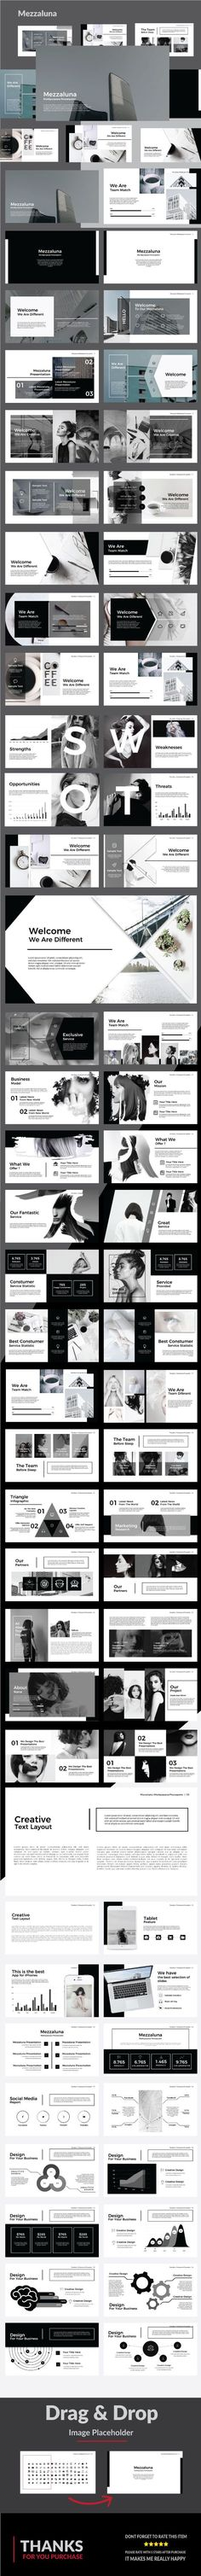 Mezzaluna - #Multipurpose Presentation Template - #PowerPoint Templates Presentation Templates